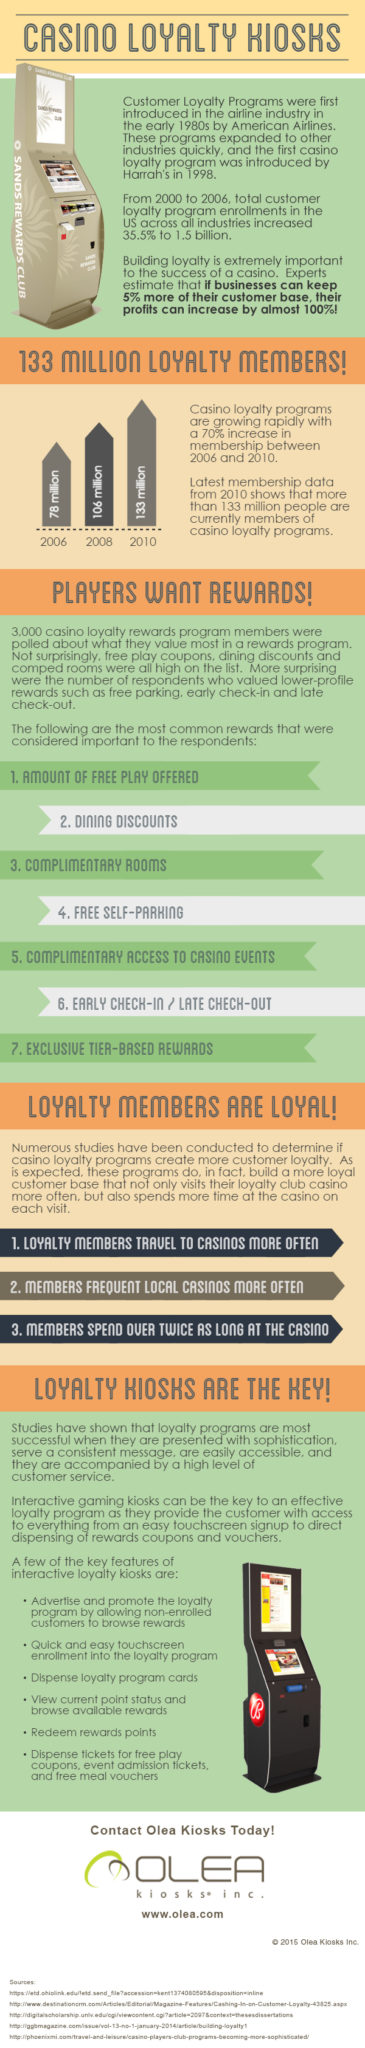 casino loyalty programs